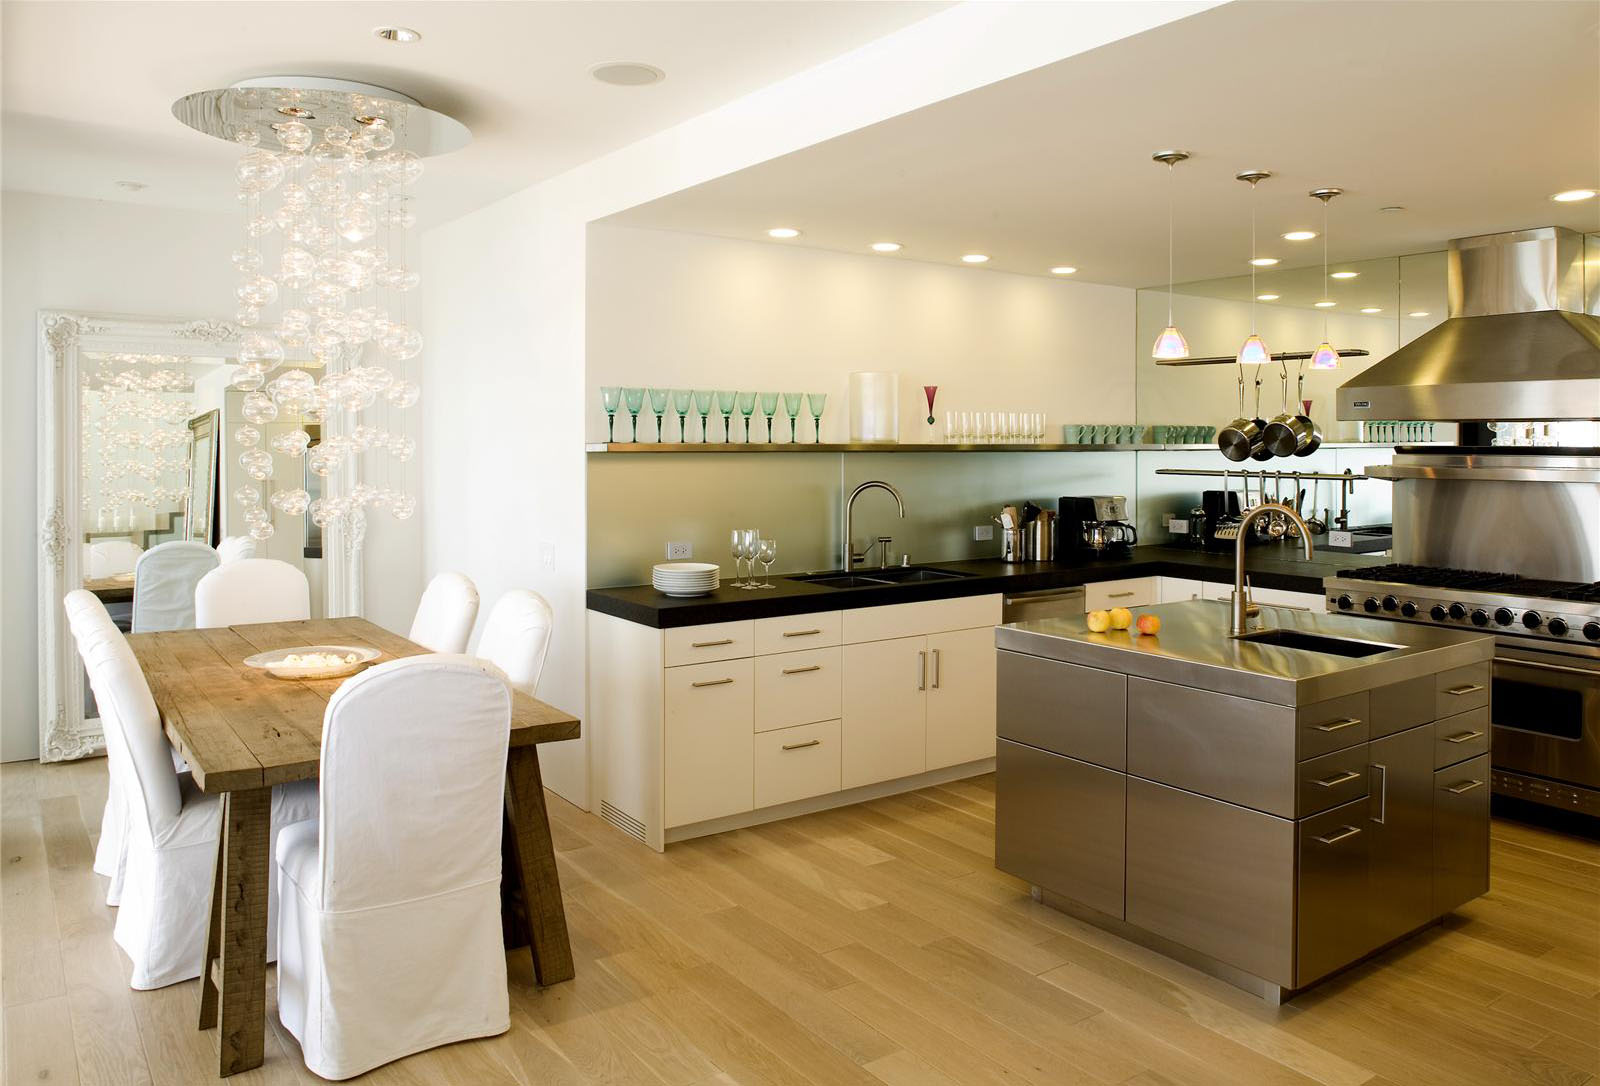 Open Kitchen Designs | 1600 x 1086 · 213 kB · jpeg | 1600 x 1086 · 213 kB · jpeg